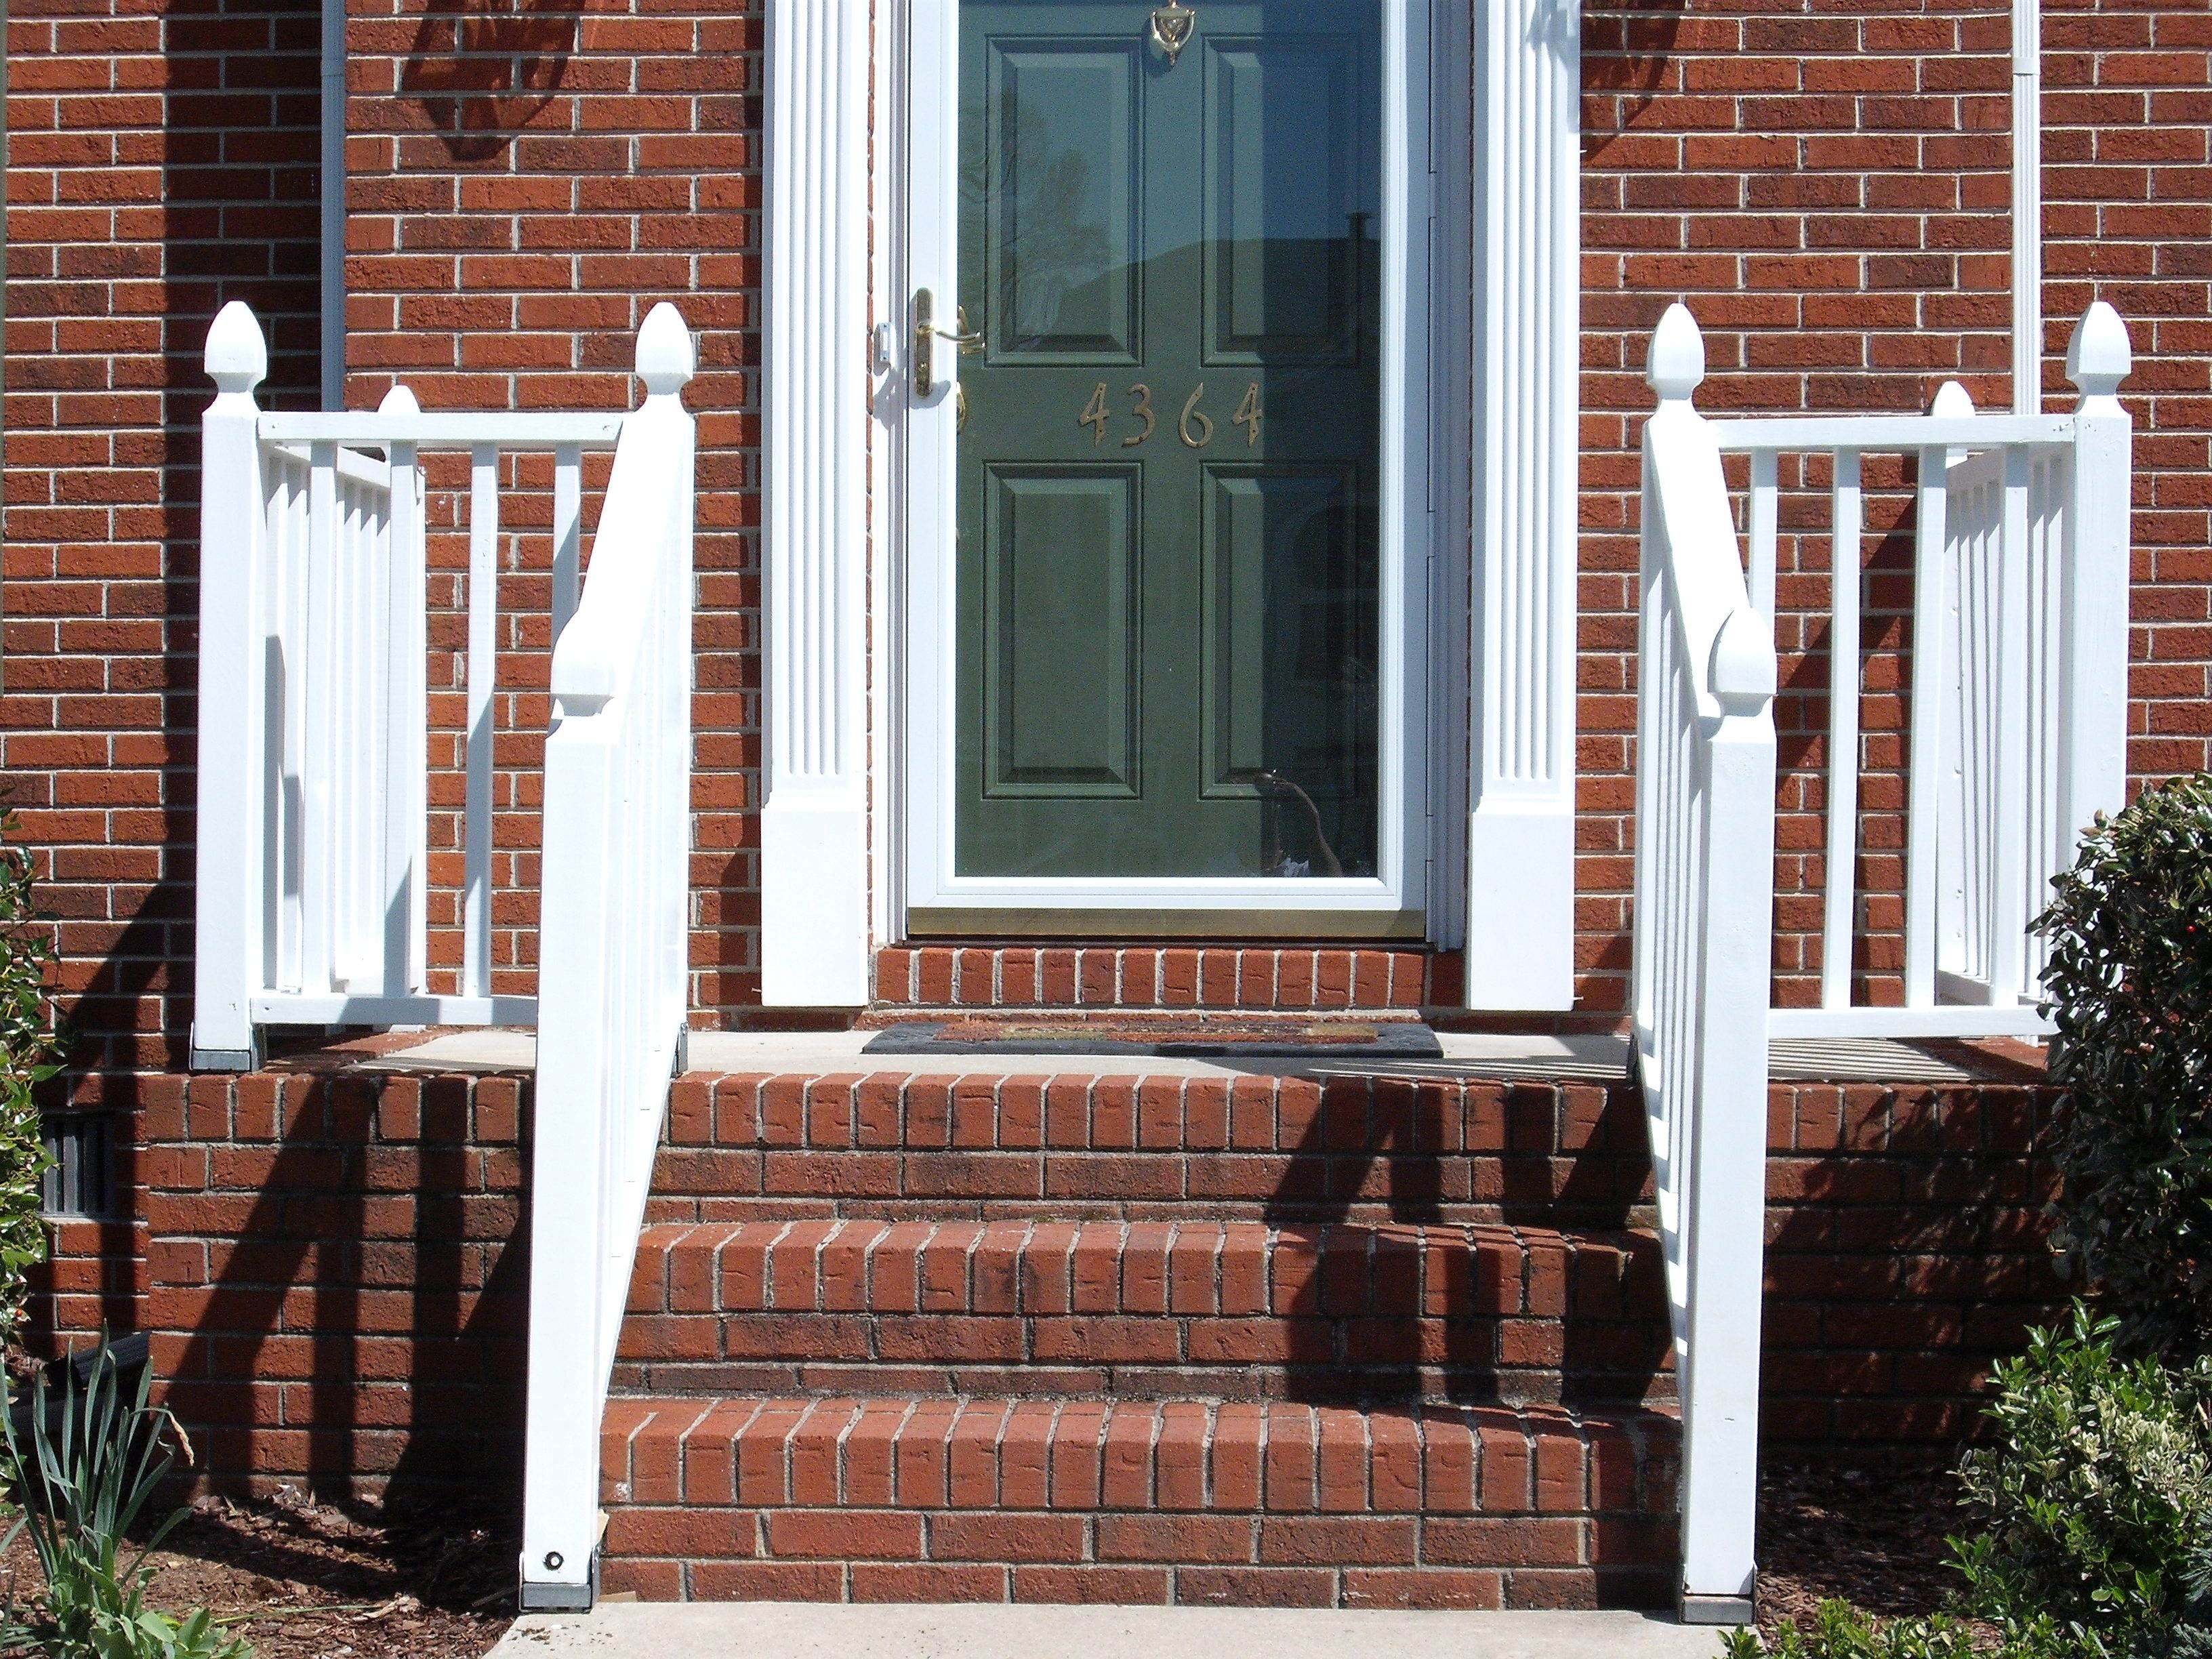 front stoop images - Google Search & front stoop images - Google Search | Architecture | Pinterest ...